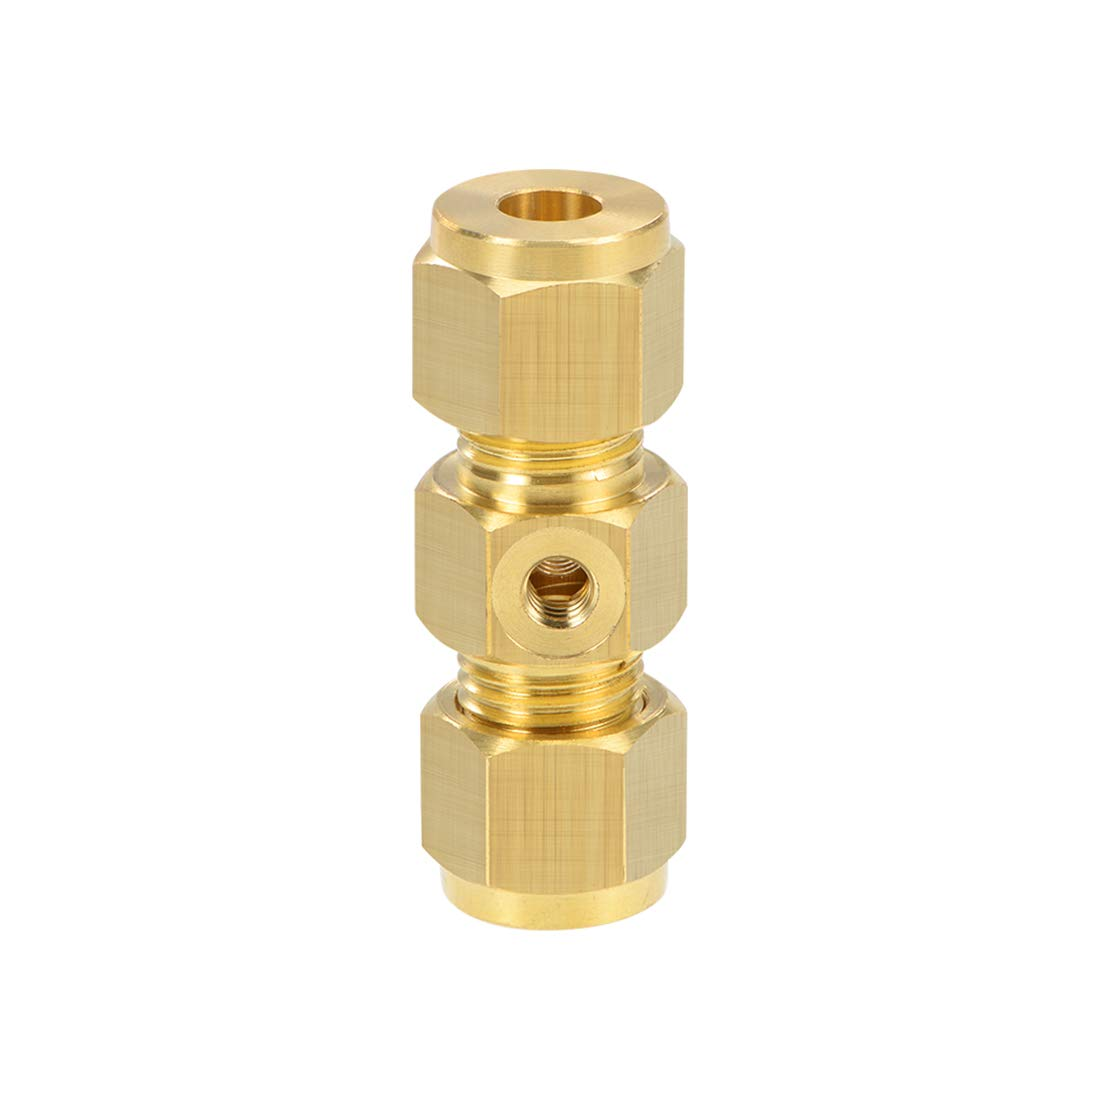 Garden Tap Water Hose Pipe  Connector Quick Connect Adapter Fitting Watering  FH